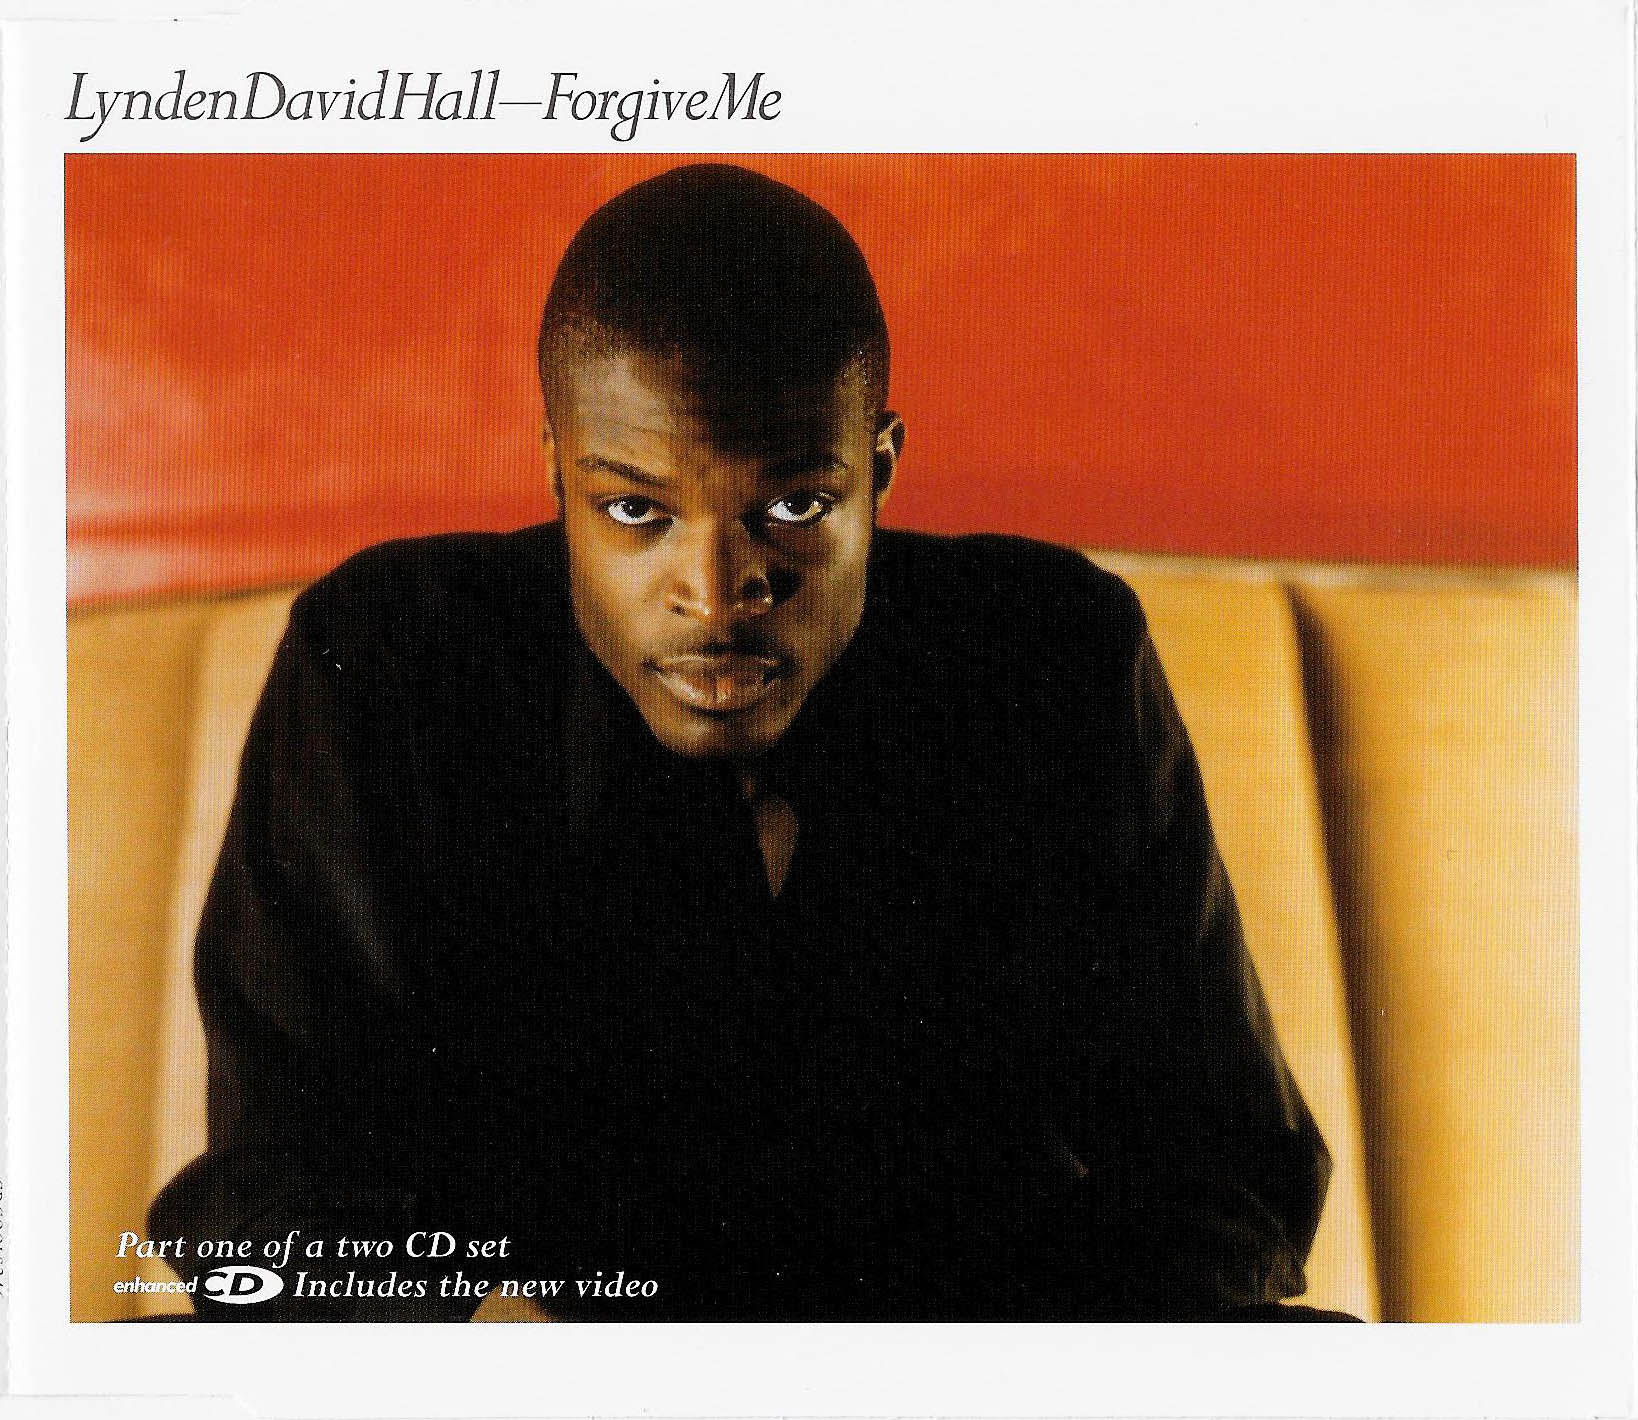 Lynden_David_Hall_Forgive_Me_CD_1_Front